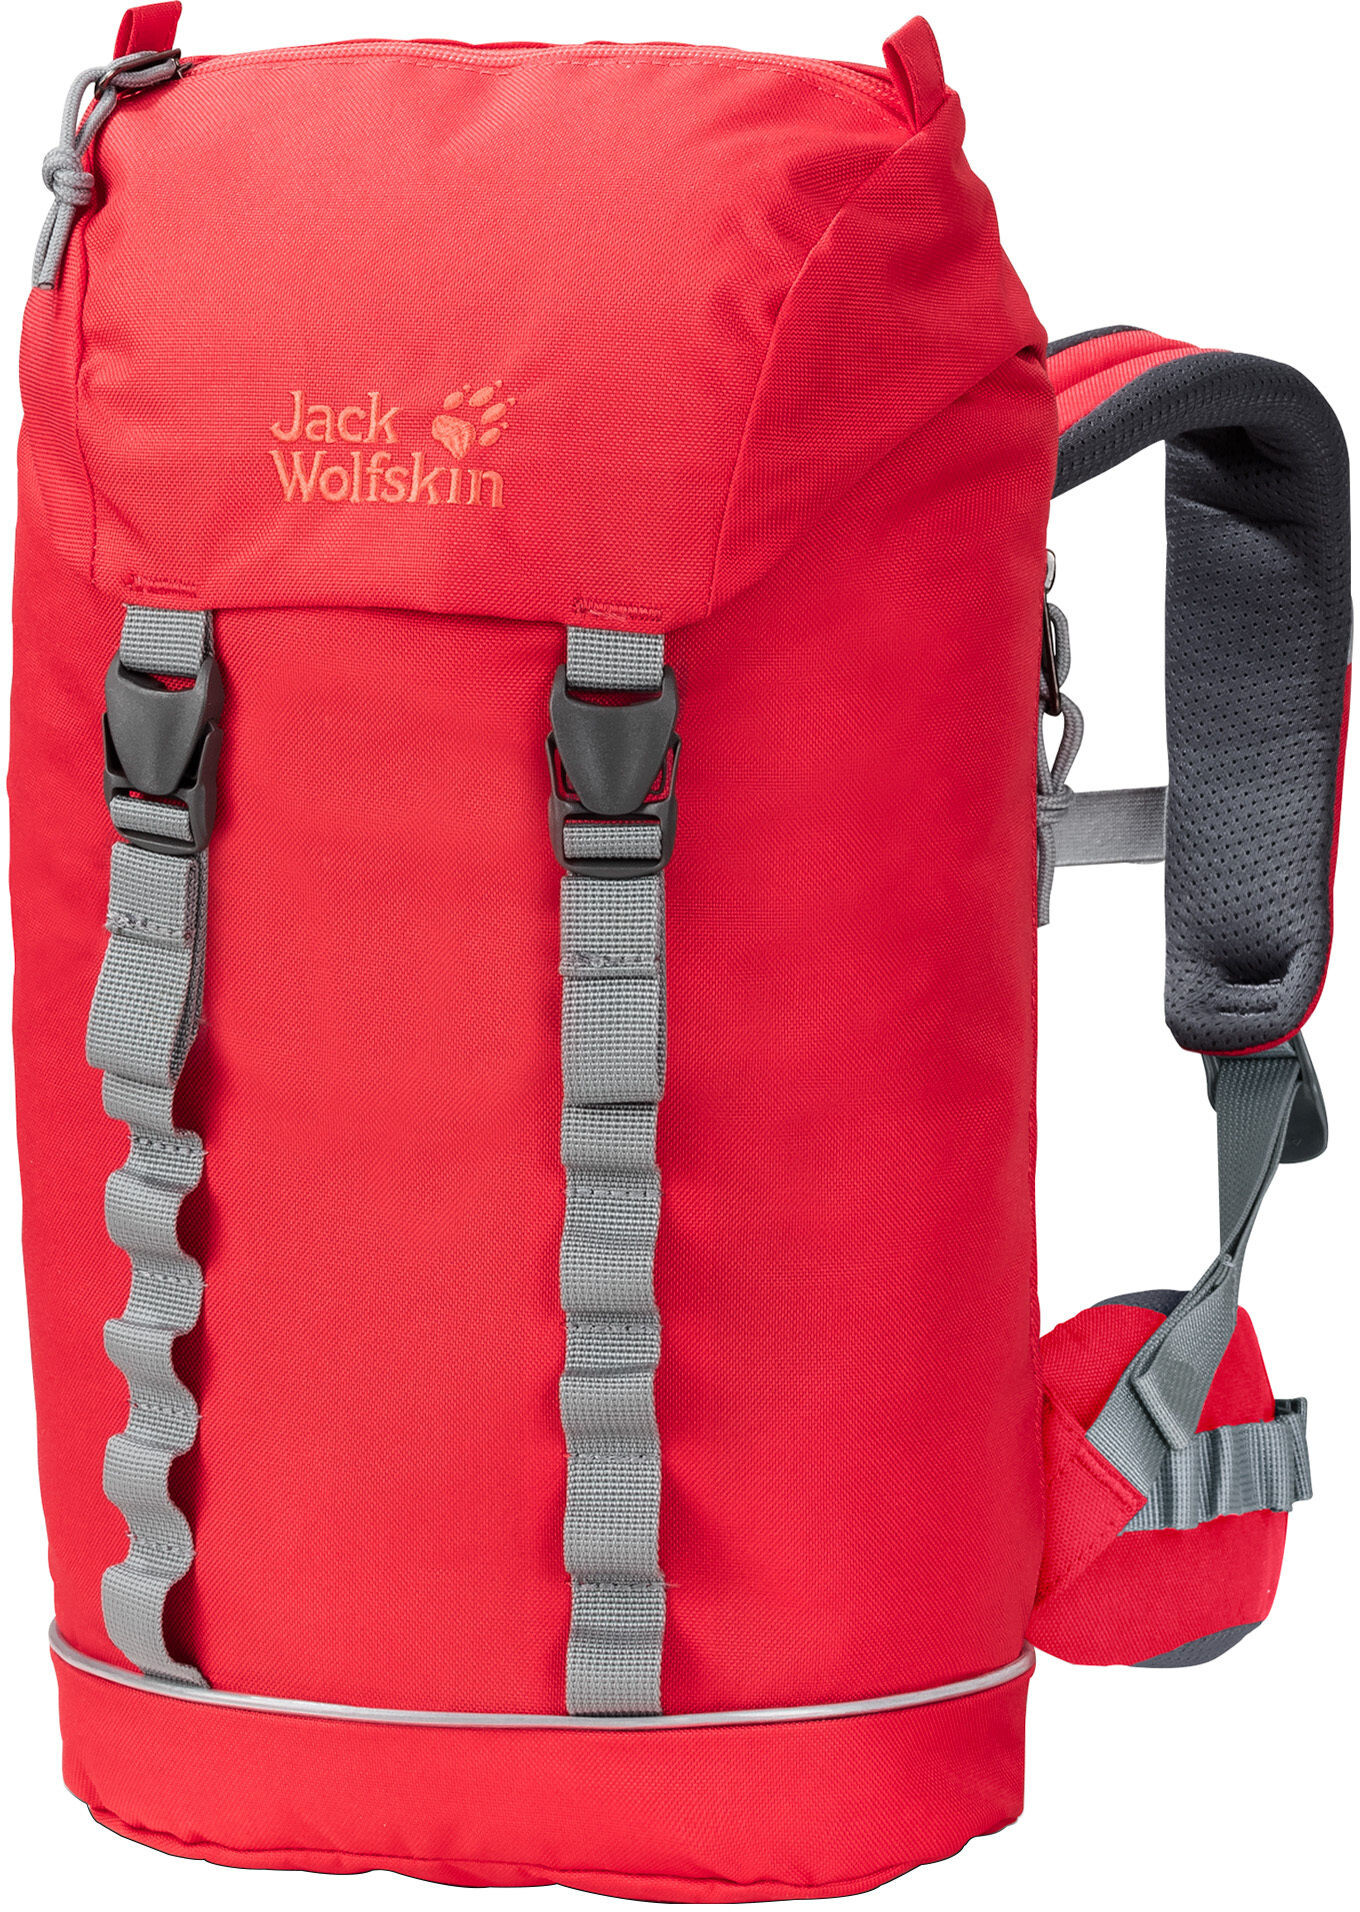 97a0a4ae78 Jack Wolfskin Jungle Backpack Children red at Addnature.co.uk